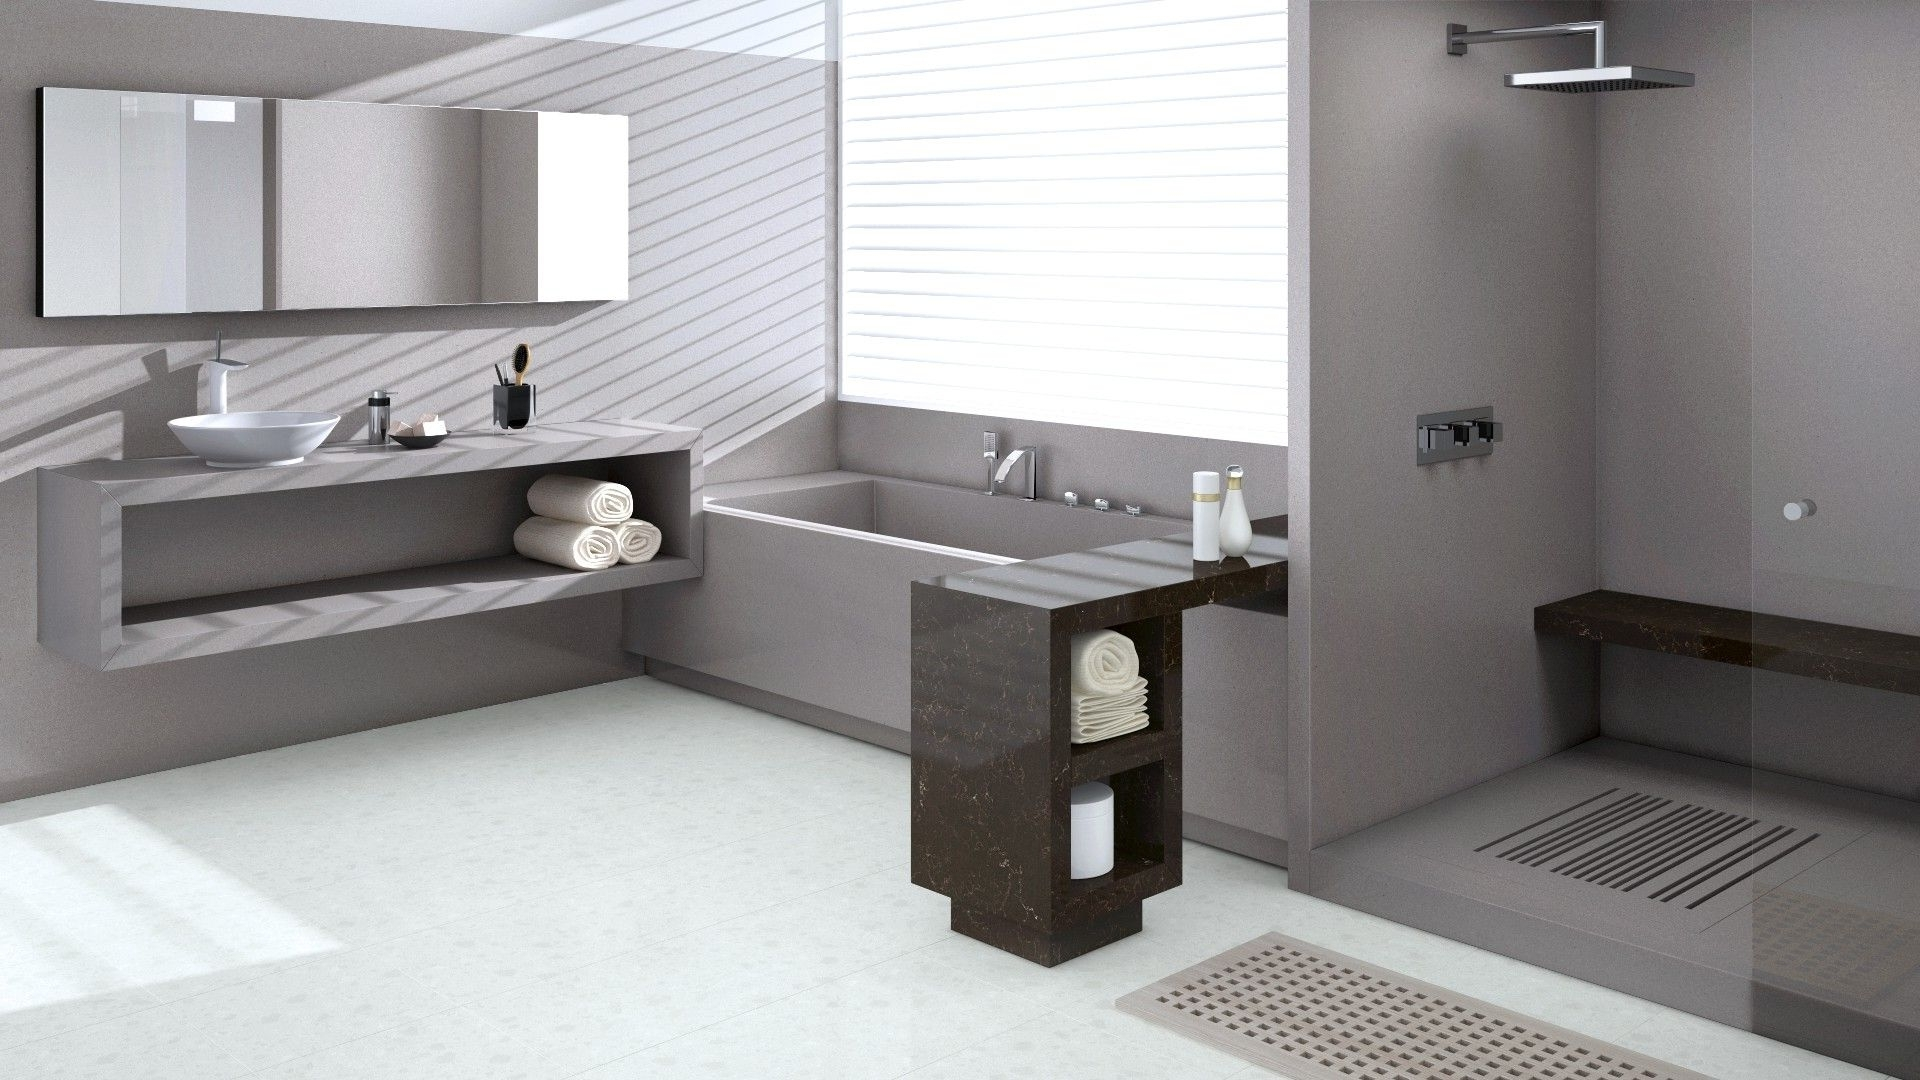 Caesarstone Visualizer. See Which Colors Suit Your Design 10+ Bathroom Design Visualiser Ideas